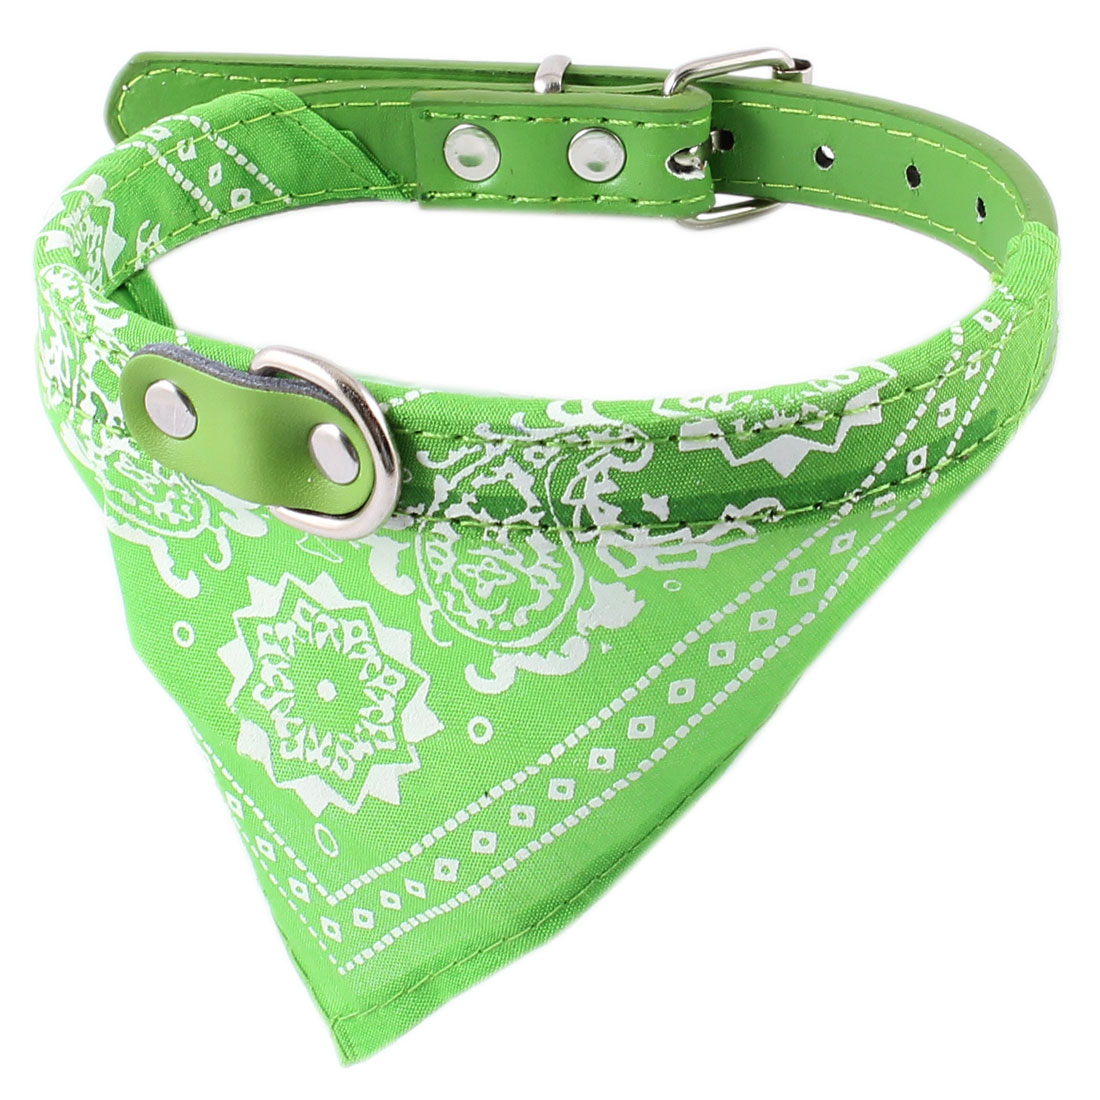 Green Single Prong Buckle Adjustable Faux Leather Belt Pet Cat Dog Bandana Collar Neckerchief Neck Scarf Triangular Binder